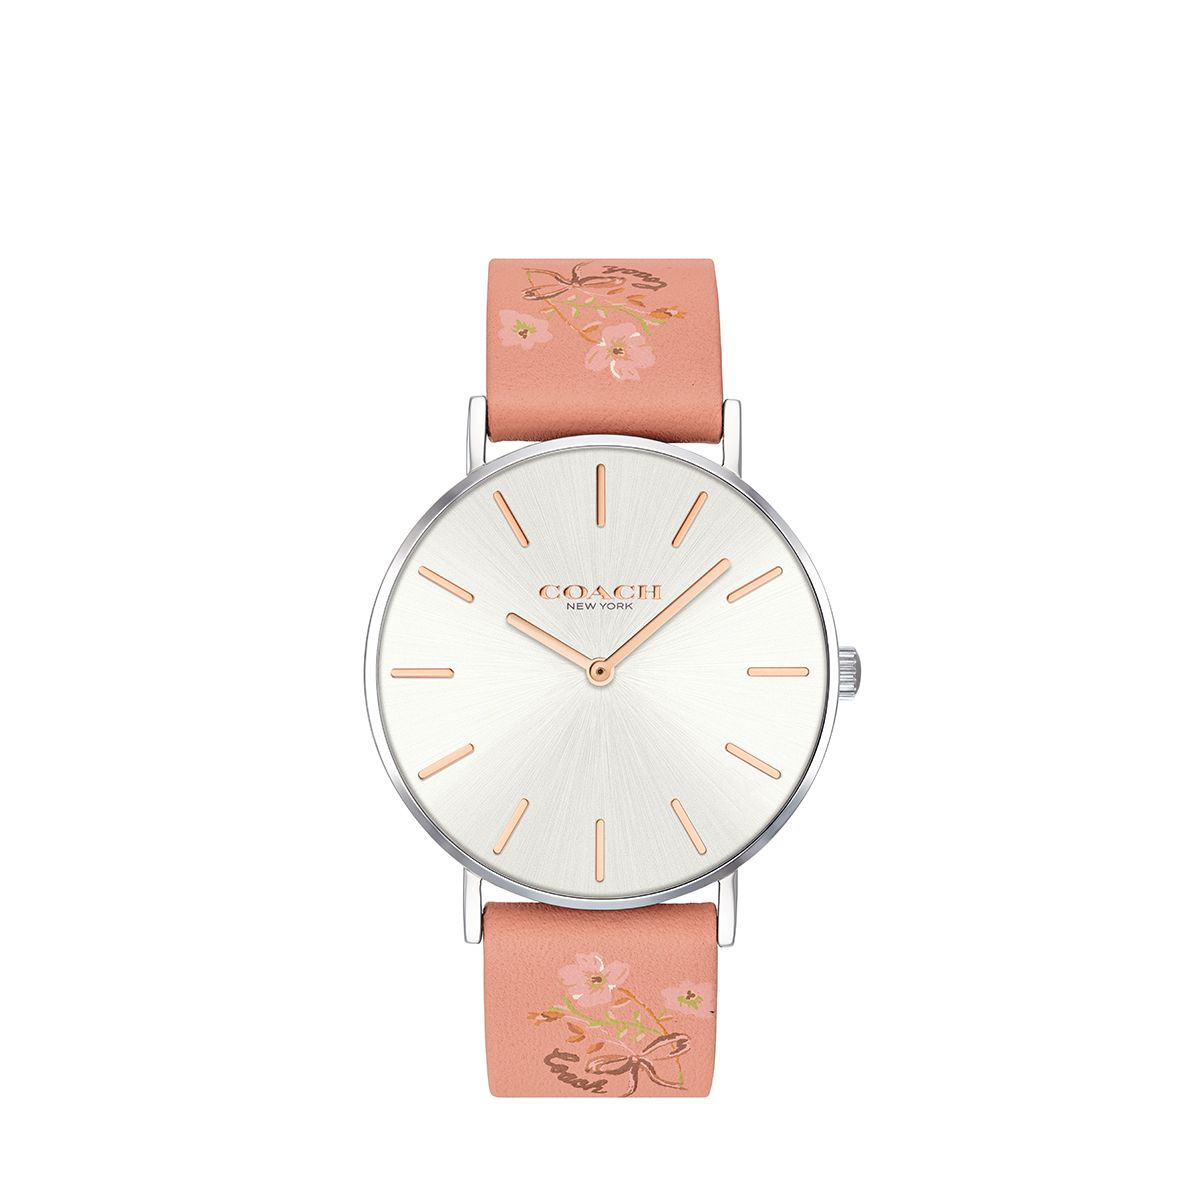 0476c4f4f4ef3 COACH Watches - Macy s